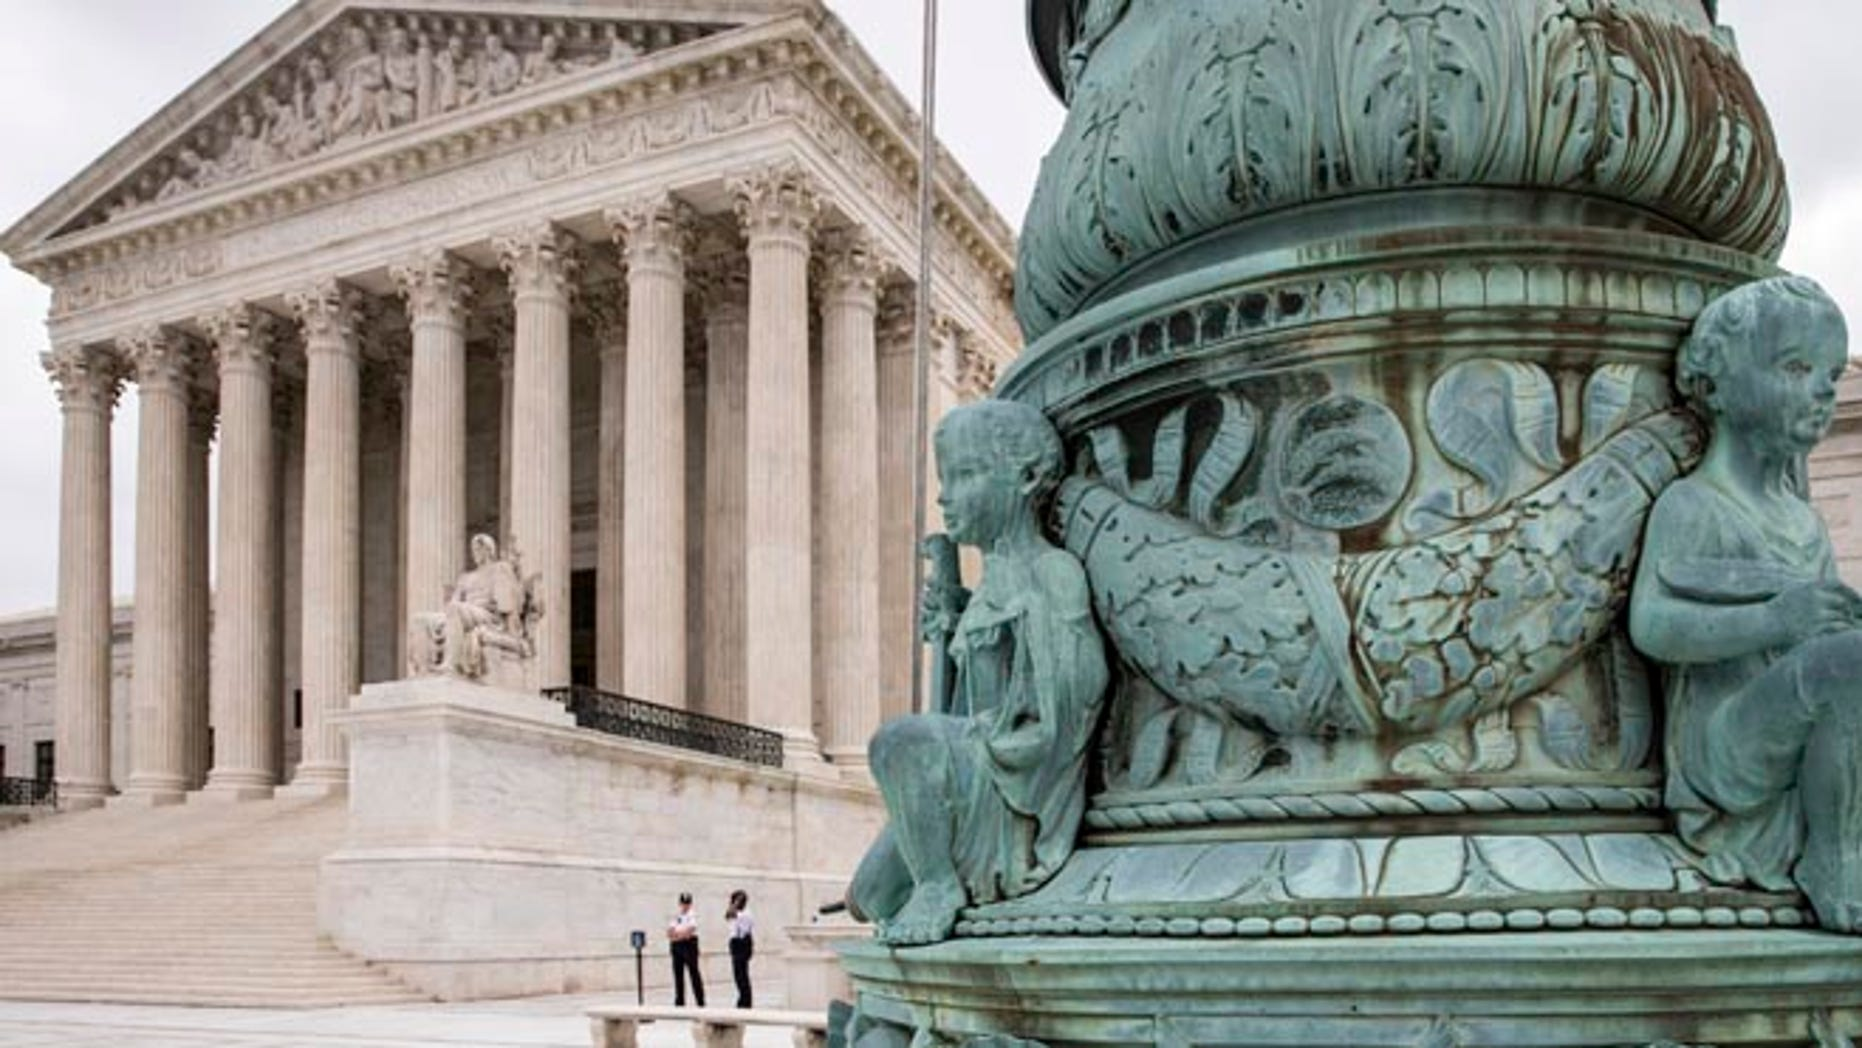 The Supreme Court in Washington is seen Tuesday, May 31, 2016, as the justices ruled unanimously that a Minnesota company could file a lawsuit against the U.S. Army Corps of Engineers over the agency's determination that its land is off limits to peat mining under the Clean Water Act. The high court agreed with the 8th Circuit decision in the case of Hawkes Co., Inc. v. U.S. Army Corps of Engineers to make it easier for landowners to bring a court challenge when federal regulators try to restrict property development due to concerns about water pollution. (AP Photo/J. Scott Applewhite)